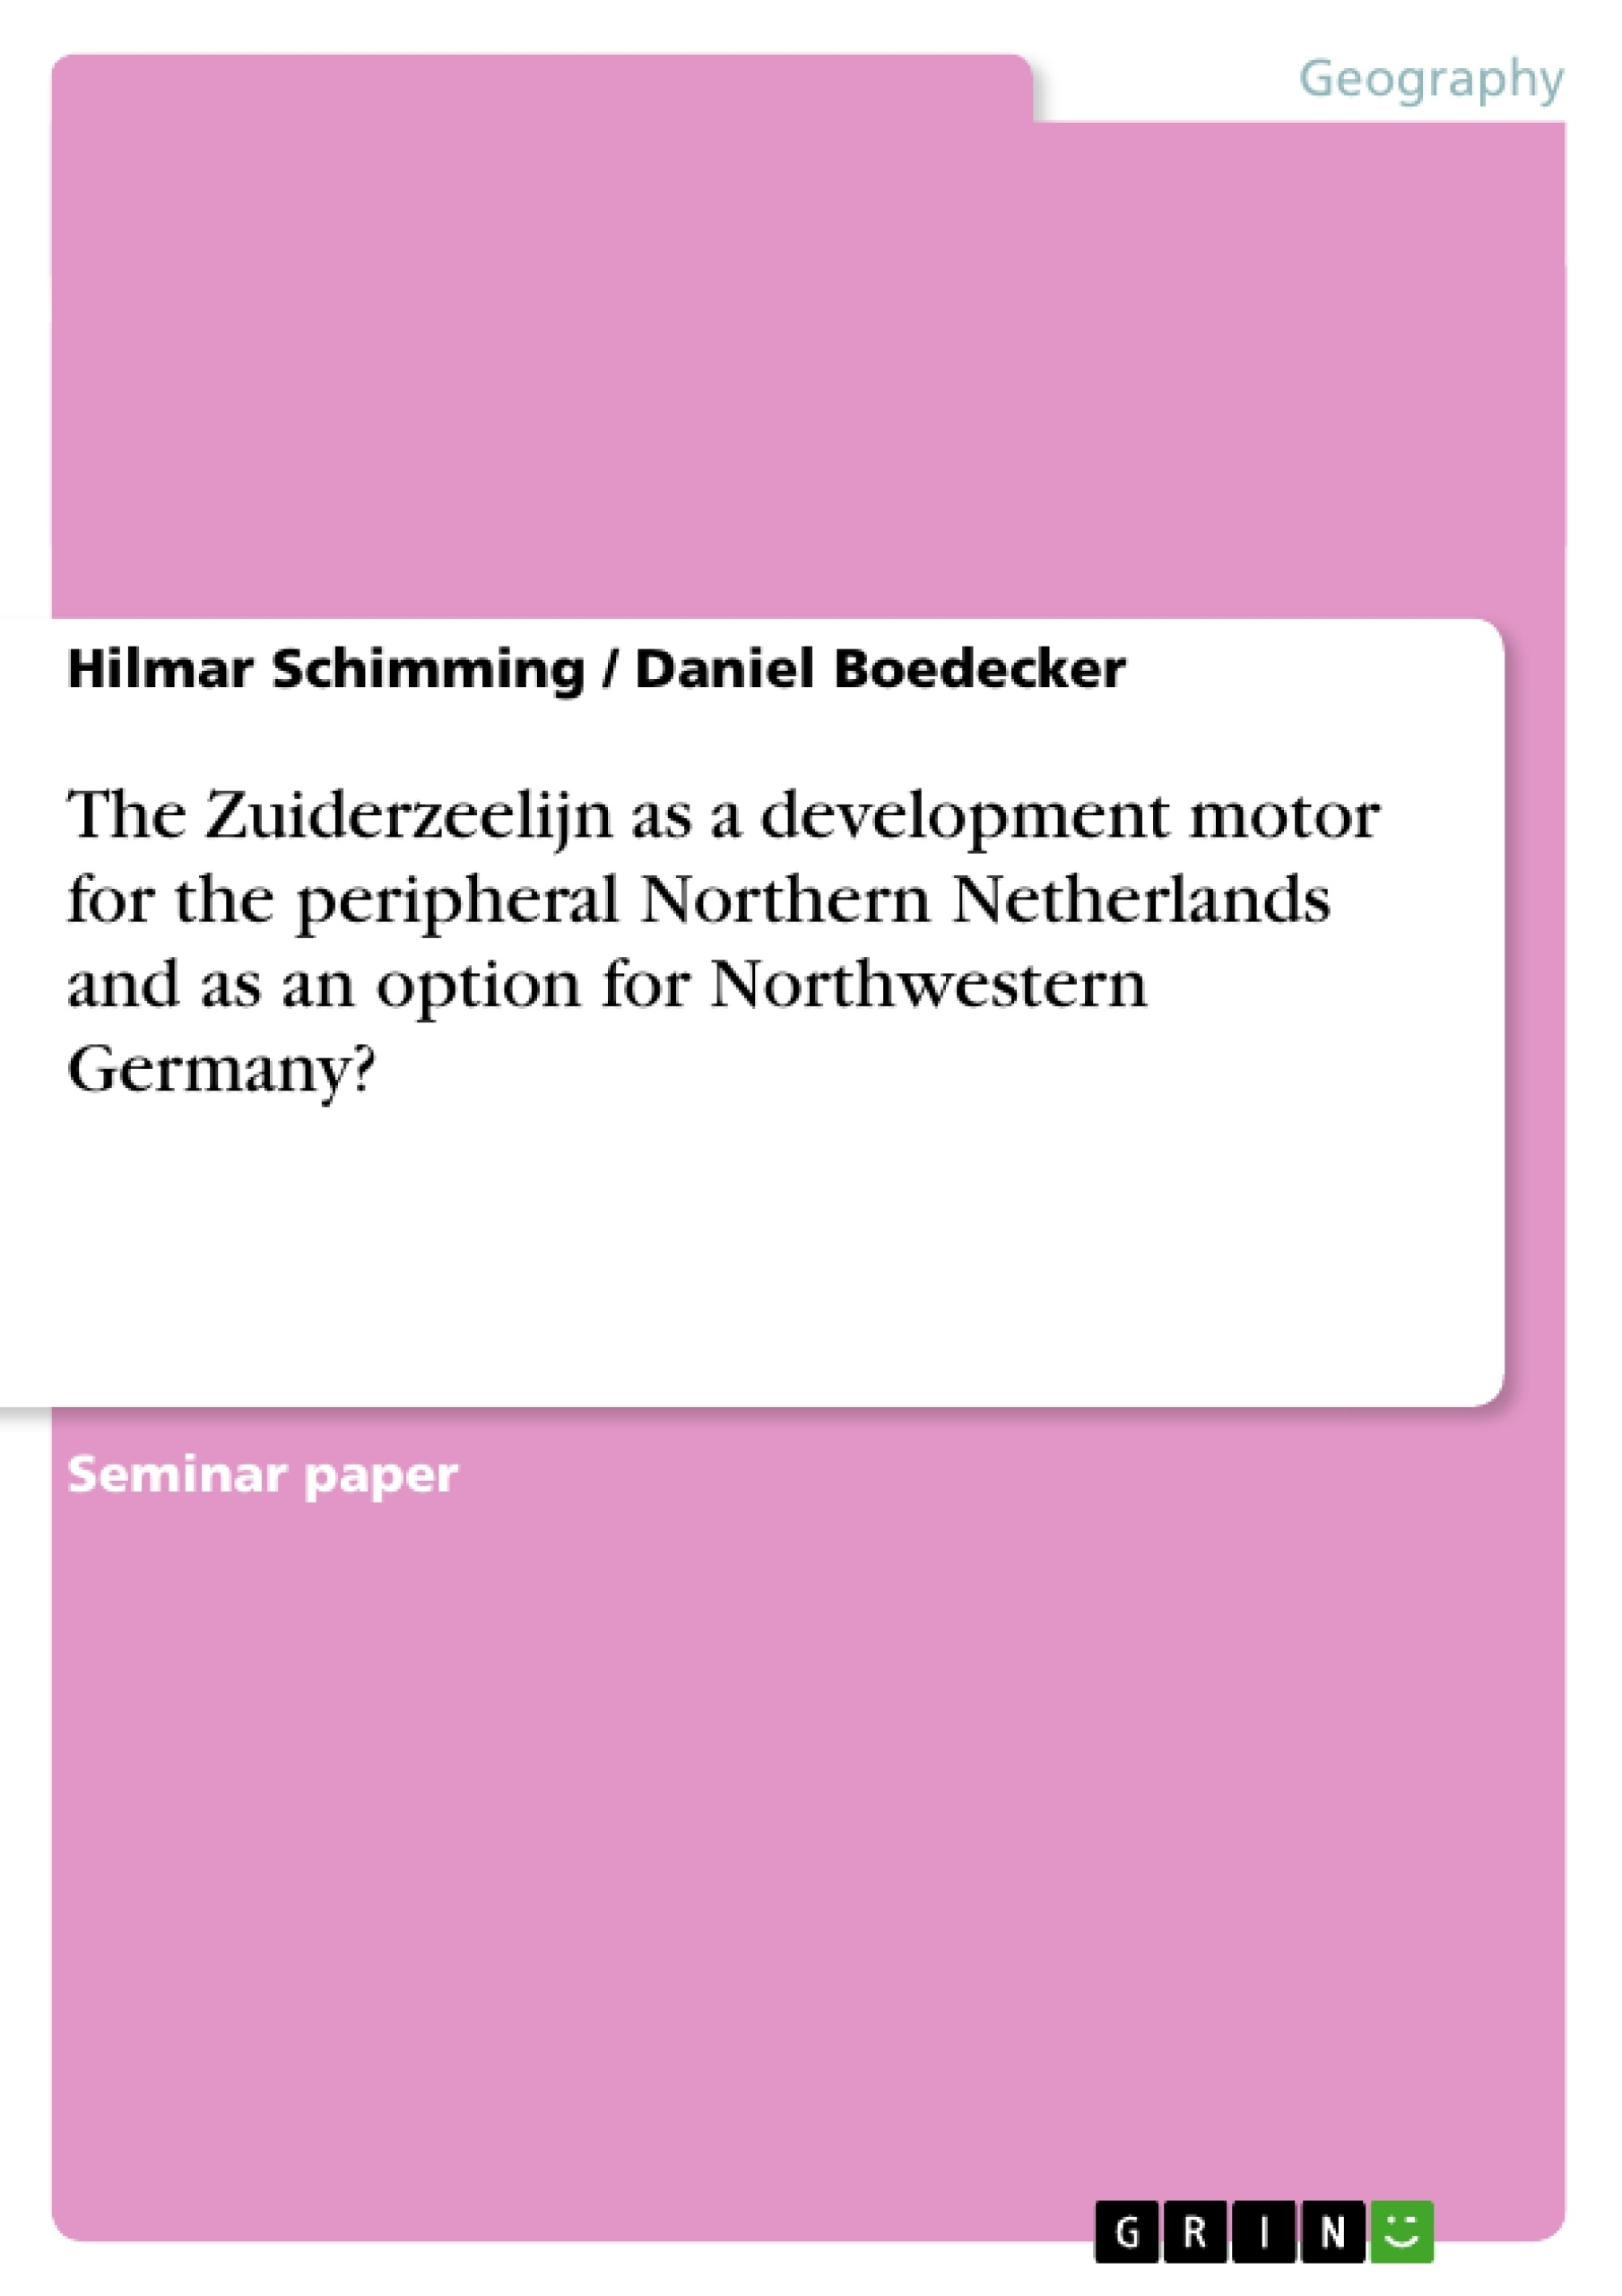 Title: The Zuiderzeelijn as a development motor for the peripheral Northern Netherlands and as an option for Northwestern Germany?